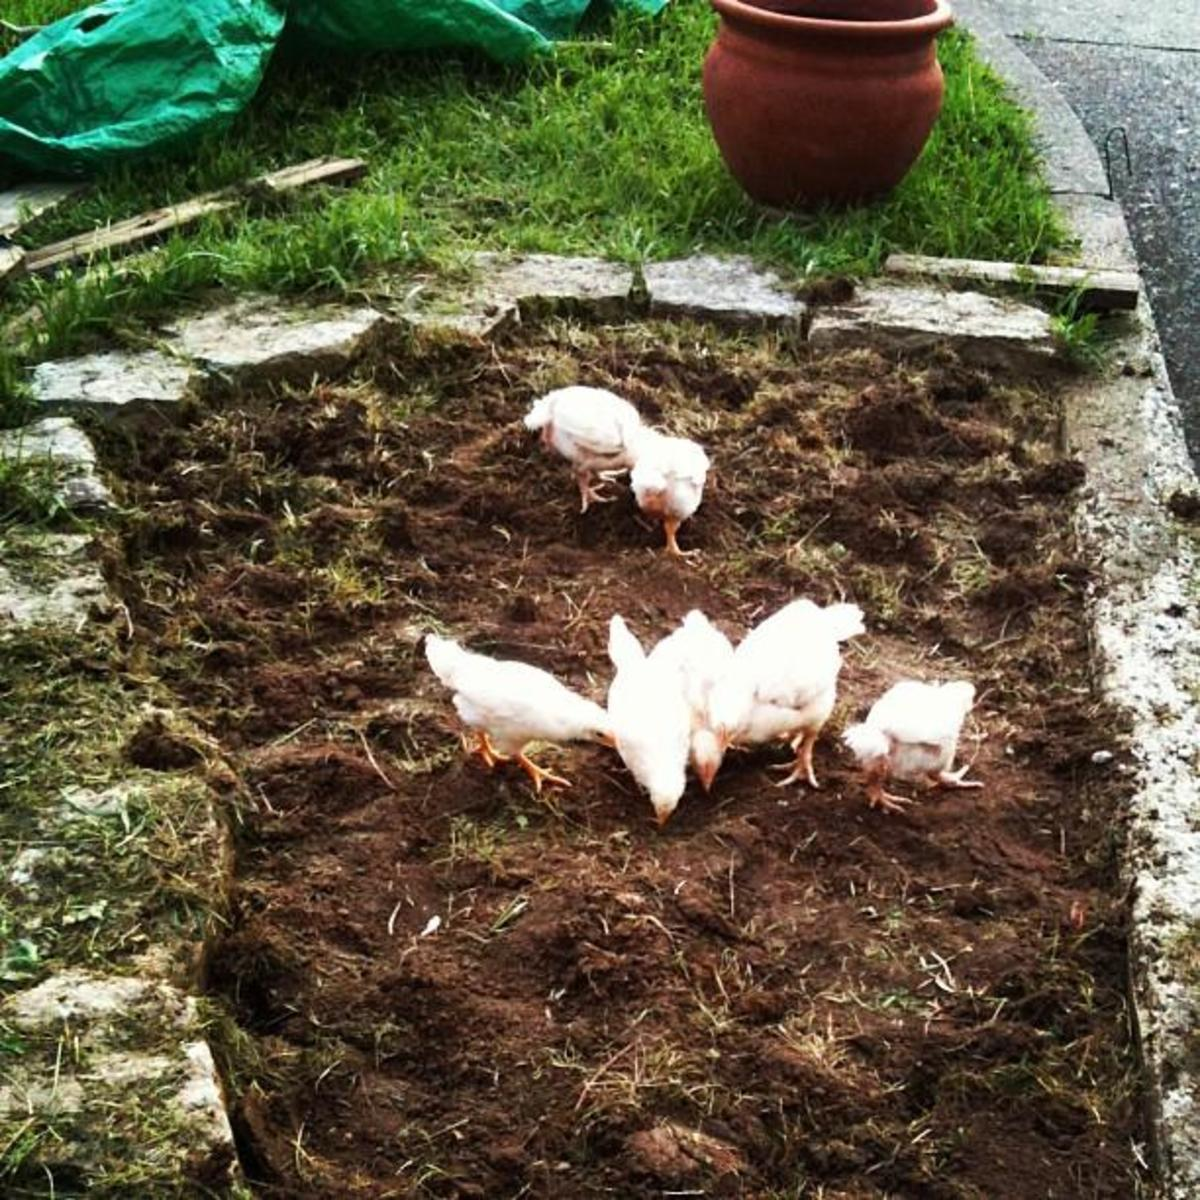 Baby chickens in the freshly turned dirt.